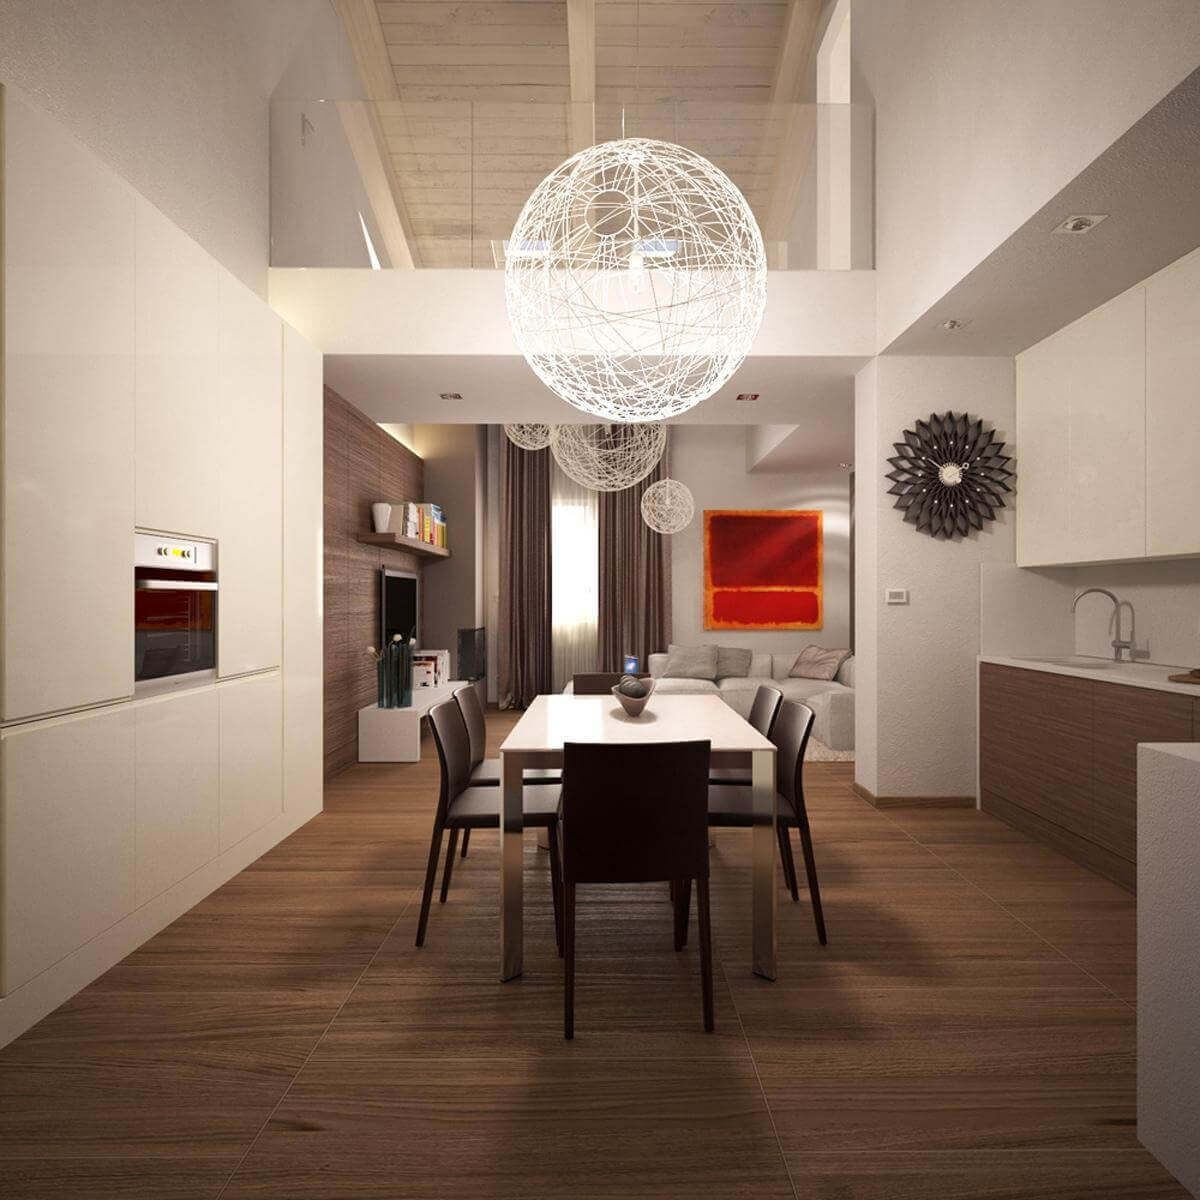 Space Saving Furniture For An Organized Home: Smart Dining Room In Large  Kitchen Space Adorned With Exquisite Chandeliers And Modern Dining .